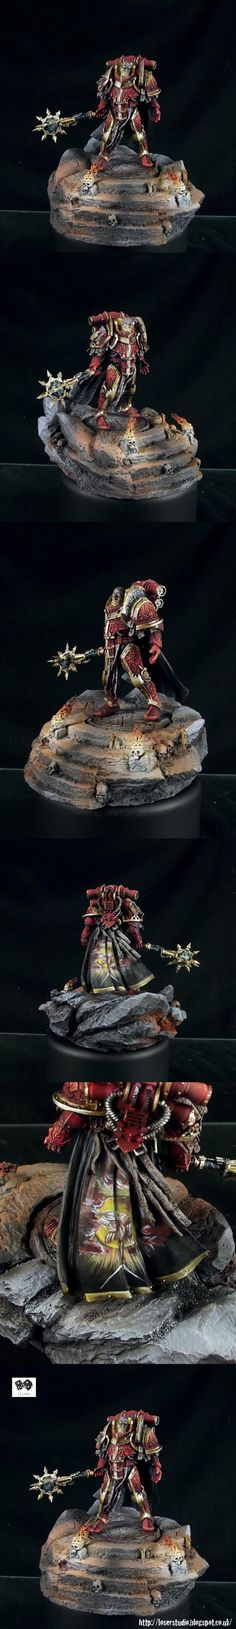 Warhammer 40k/30k, Chaos Space Marines, Lorgar, Primarch of the Word Bearers - at the height of the Horus Heresy. Wonderful subdued lighting on this model!